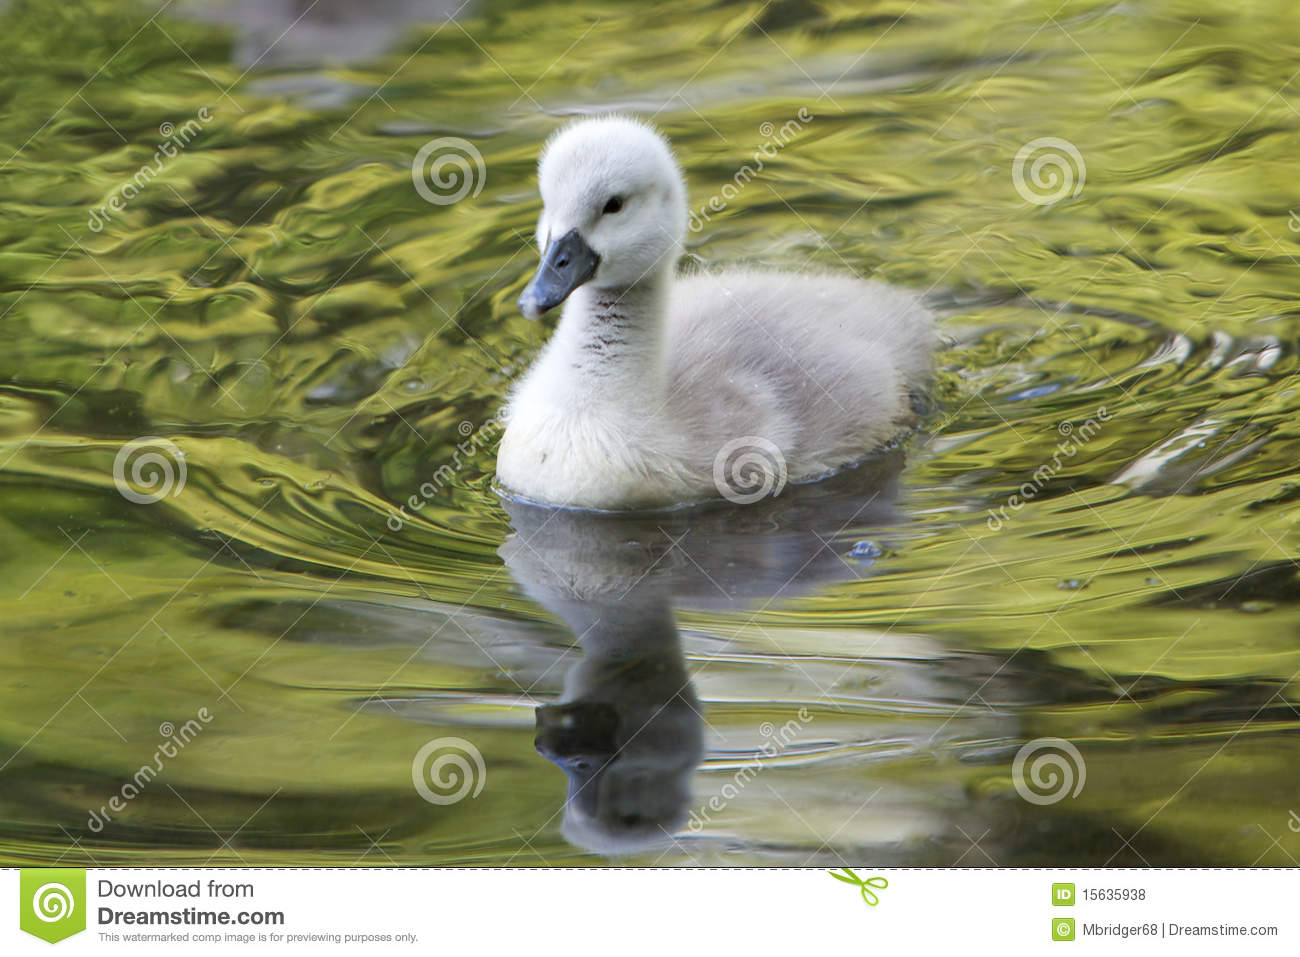 Cygnet clipart #14, Download drawings